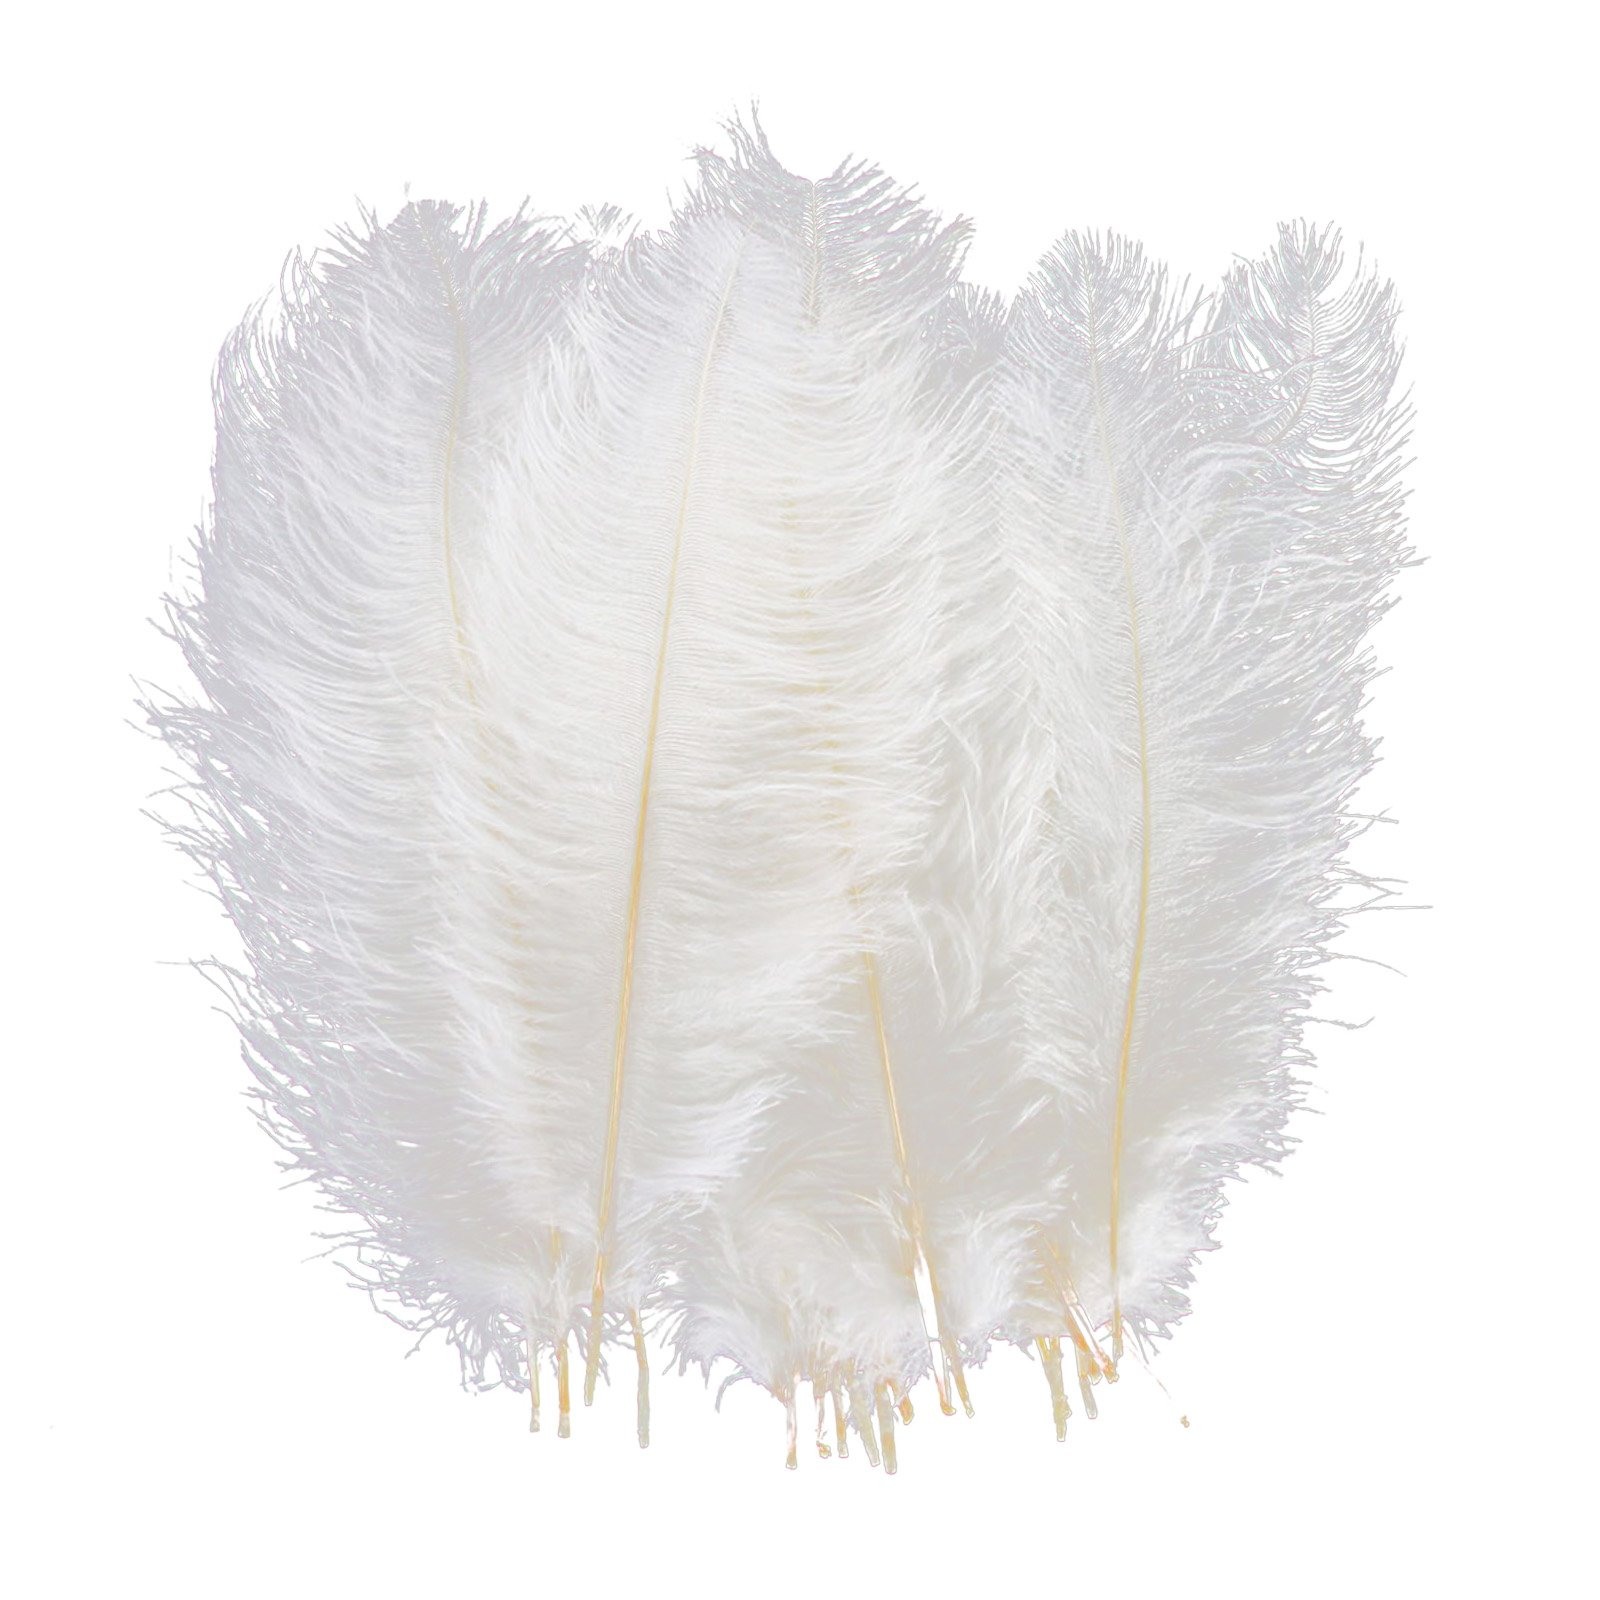 Ostrich Feathers Craft 6-10inch (18-25cm) Plume for Wedding Centerpieces Home Decoration (White, 100 pcs)